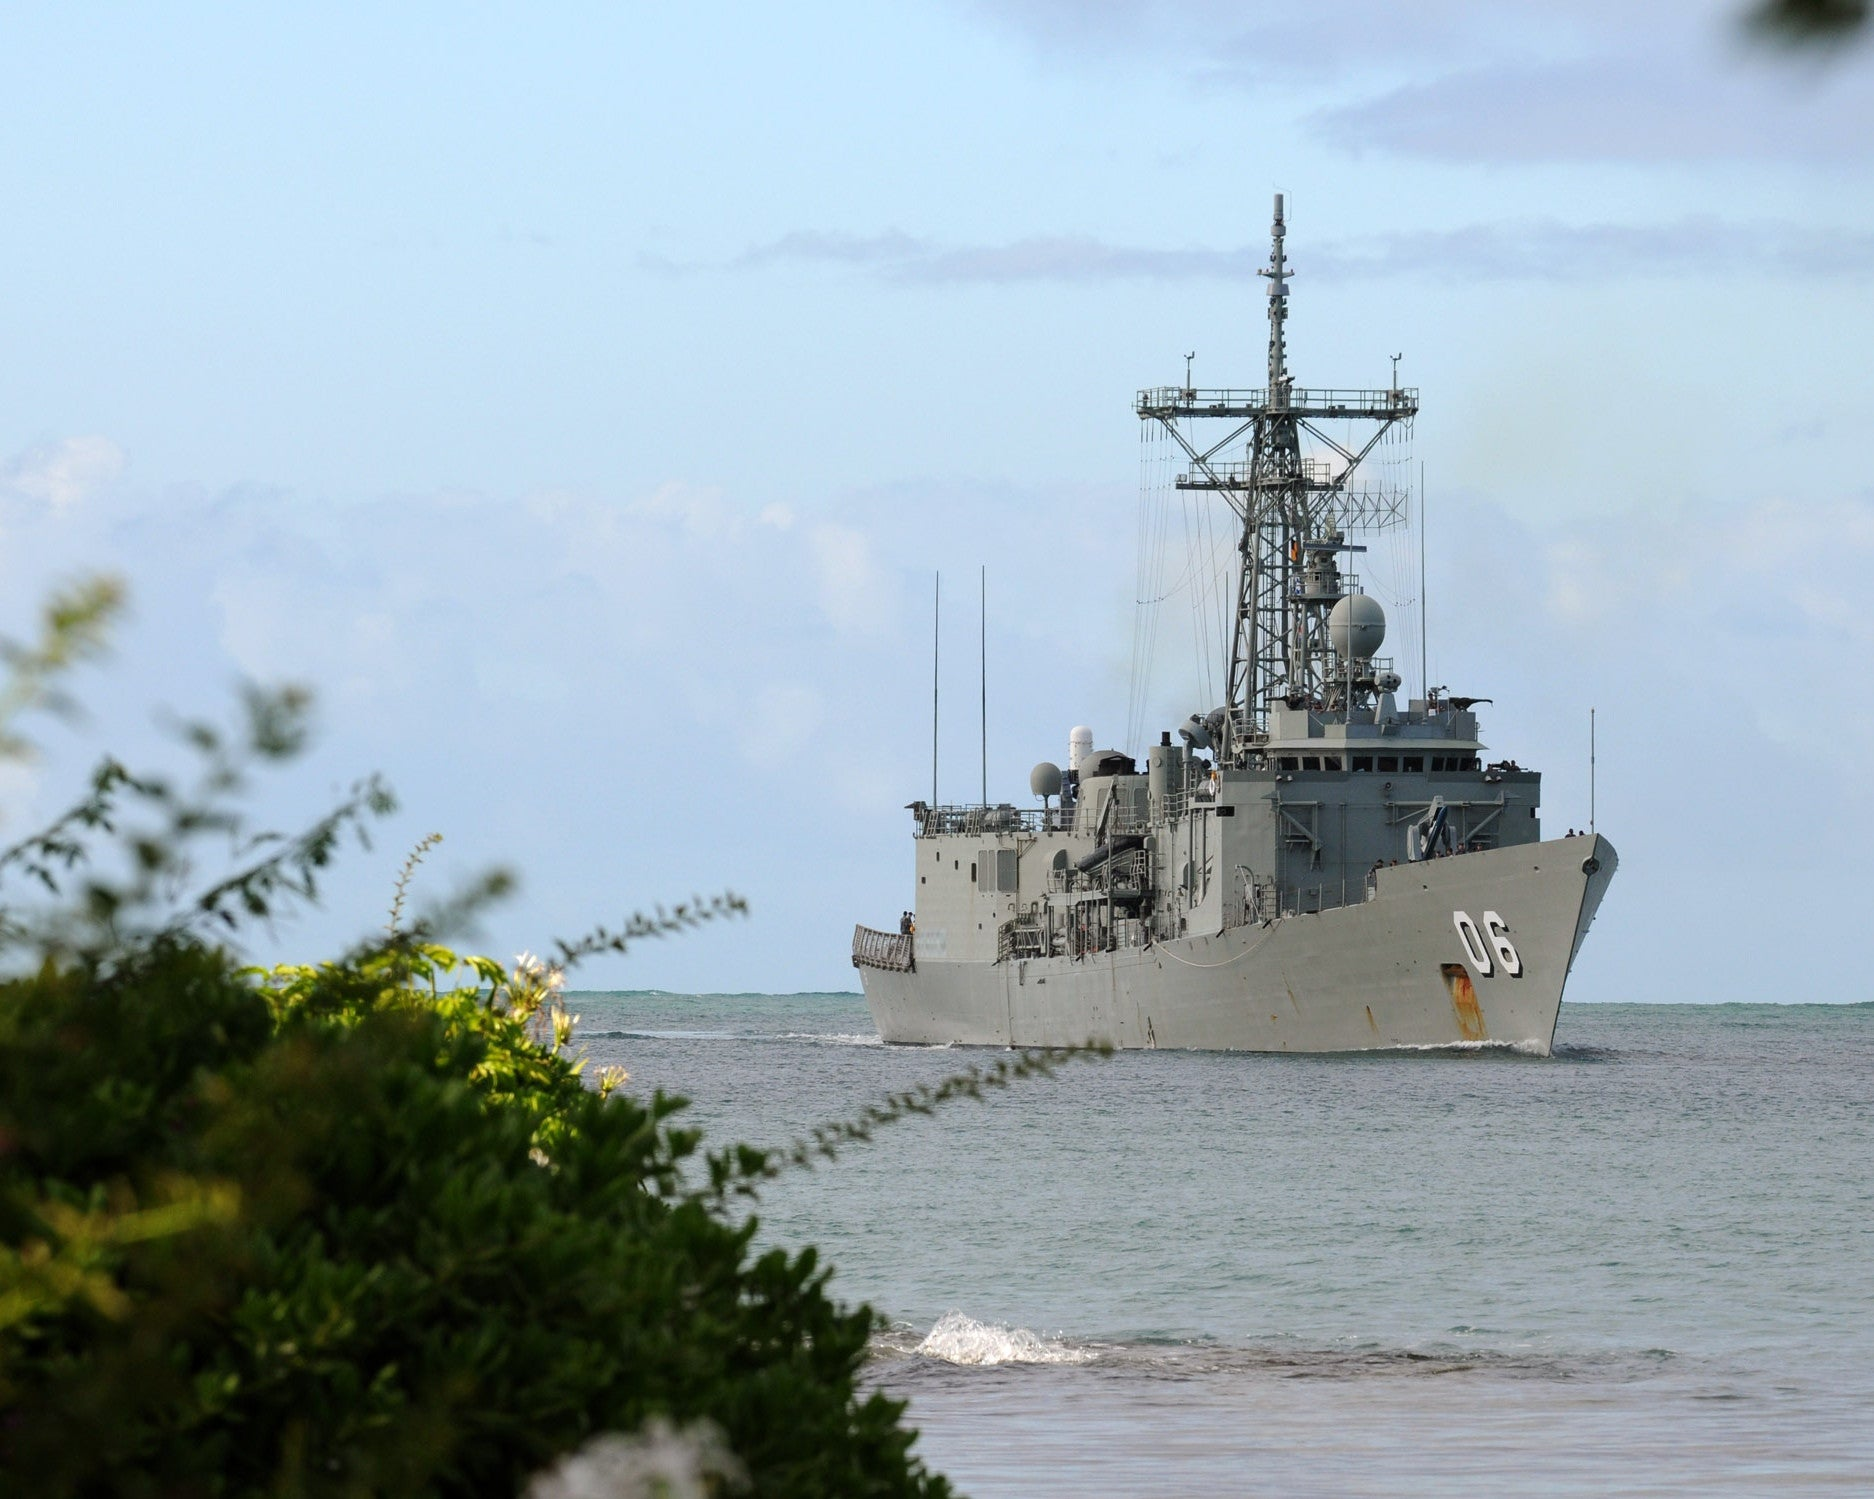 "HMAS Newcastle FFG-06 Returns to Joint Base Pearl Harbor-Hickam (July 30, 2010) - 8 x 10"" Photograph"